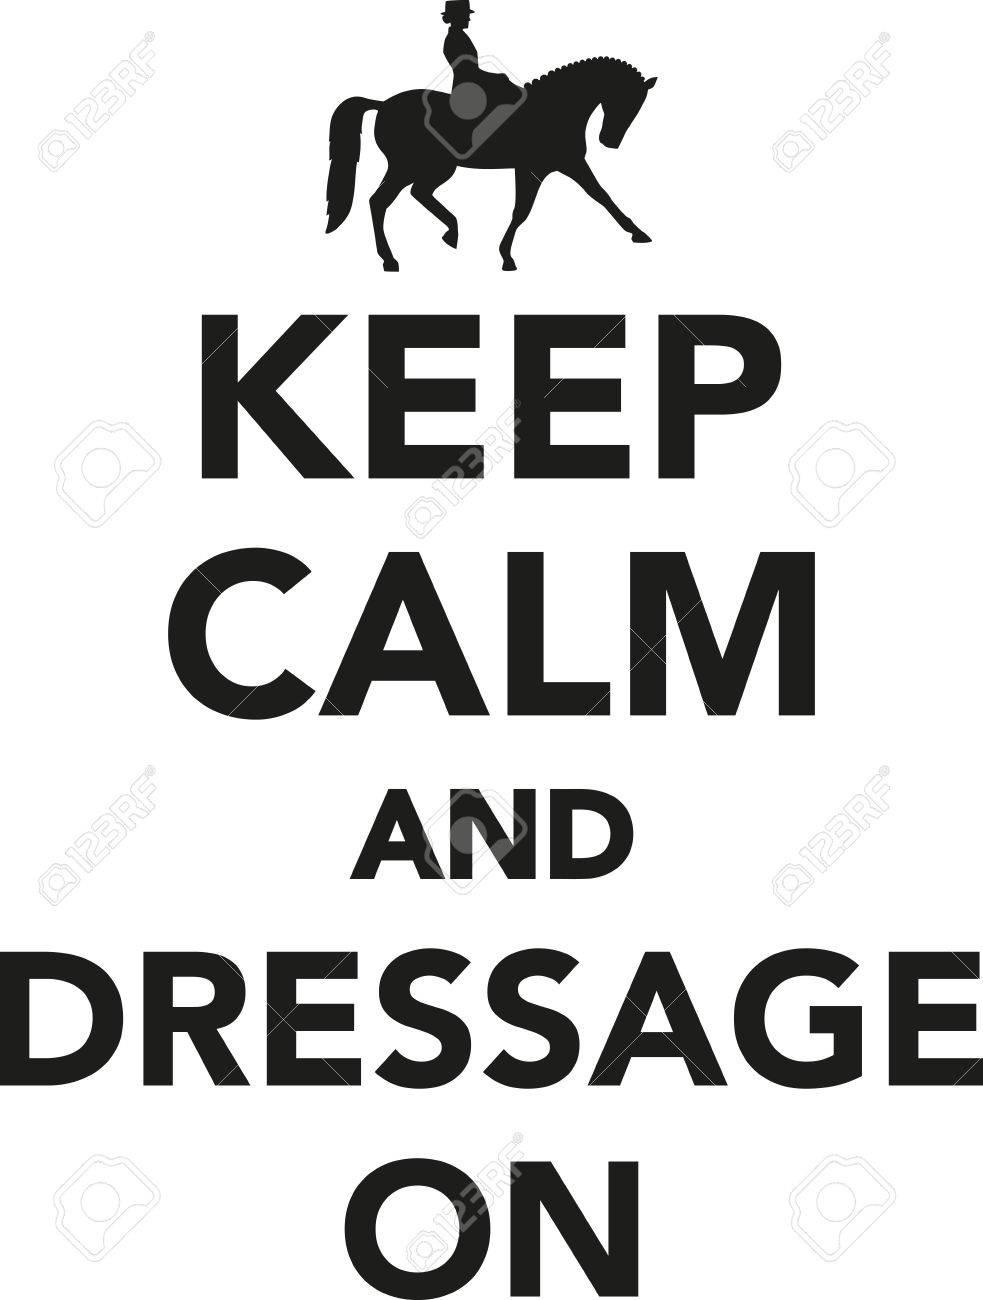 keep calm and dressage on royalty free cliparts vectors and stock rh 123rf com  keep calm logo maker